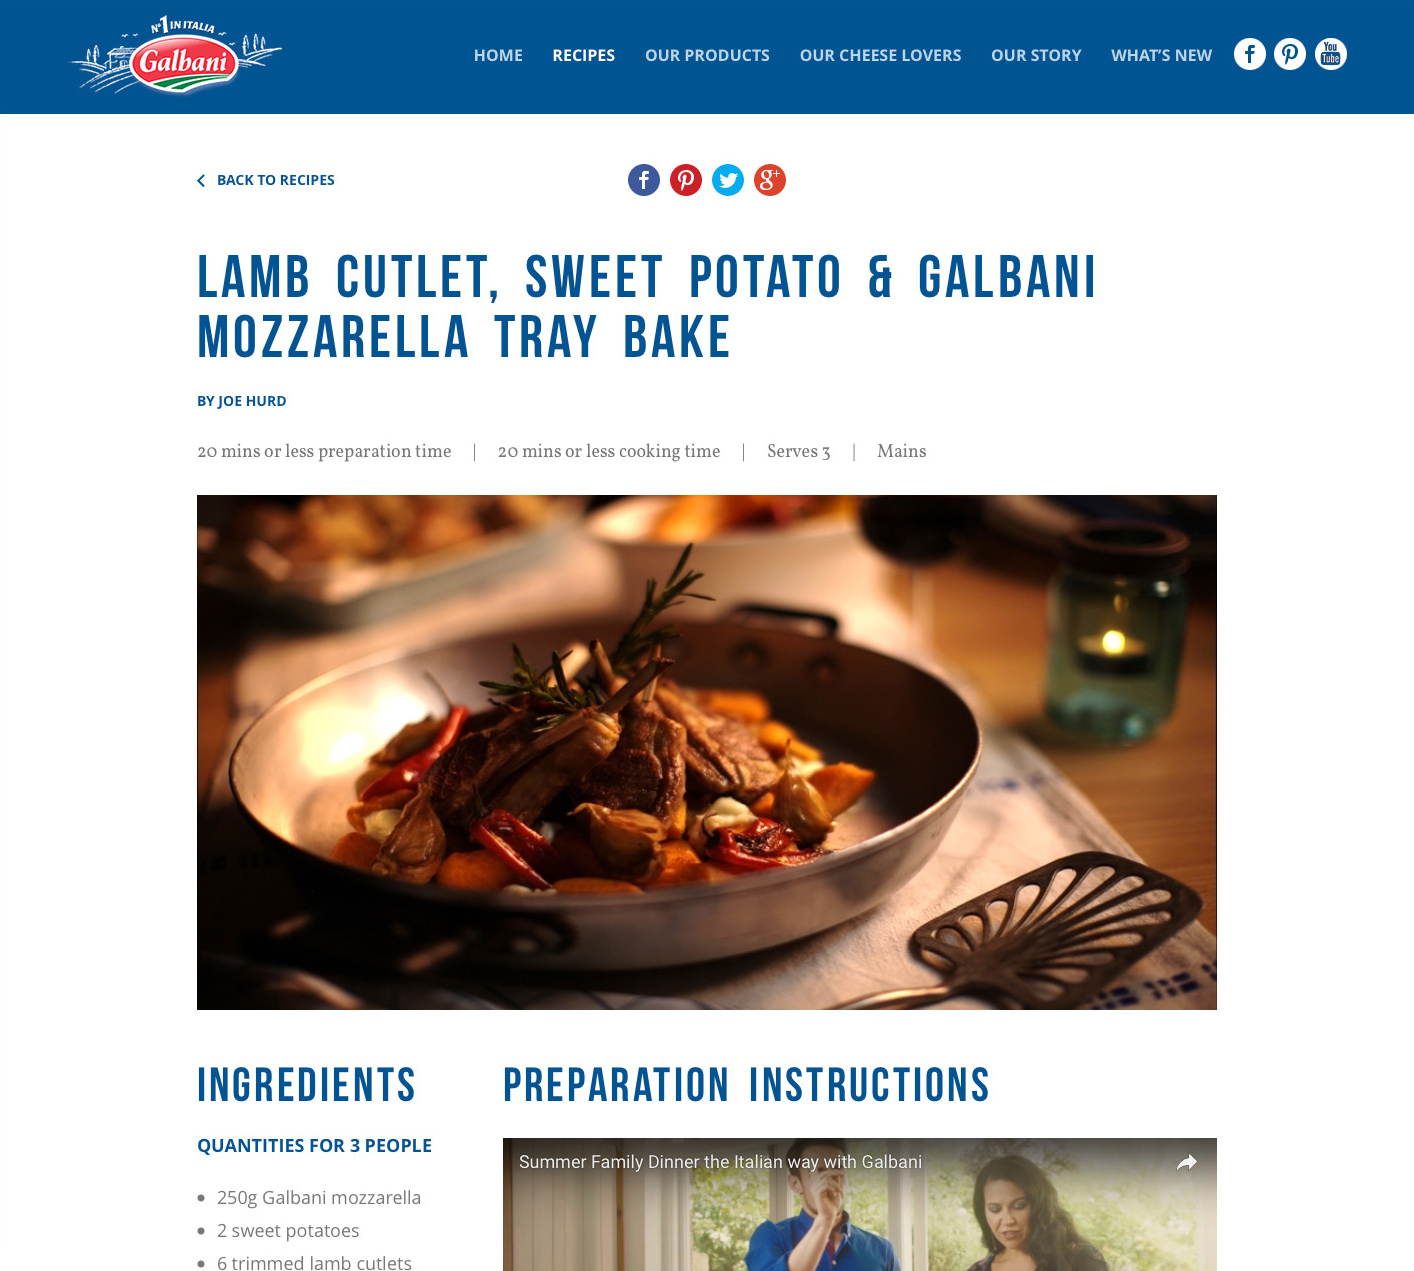 Galbani recipe page, showing almb, sweet potato and mozzarella tray bake, with instructions and ingredients list.